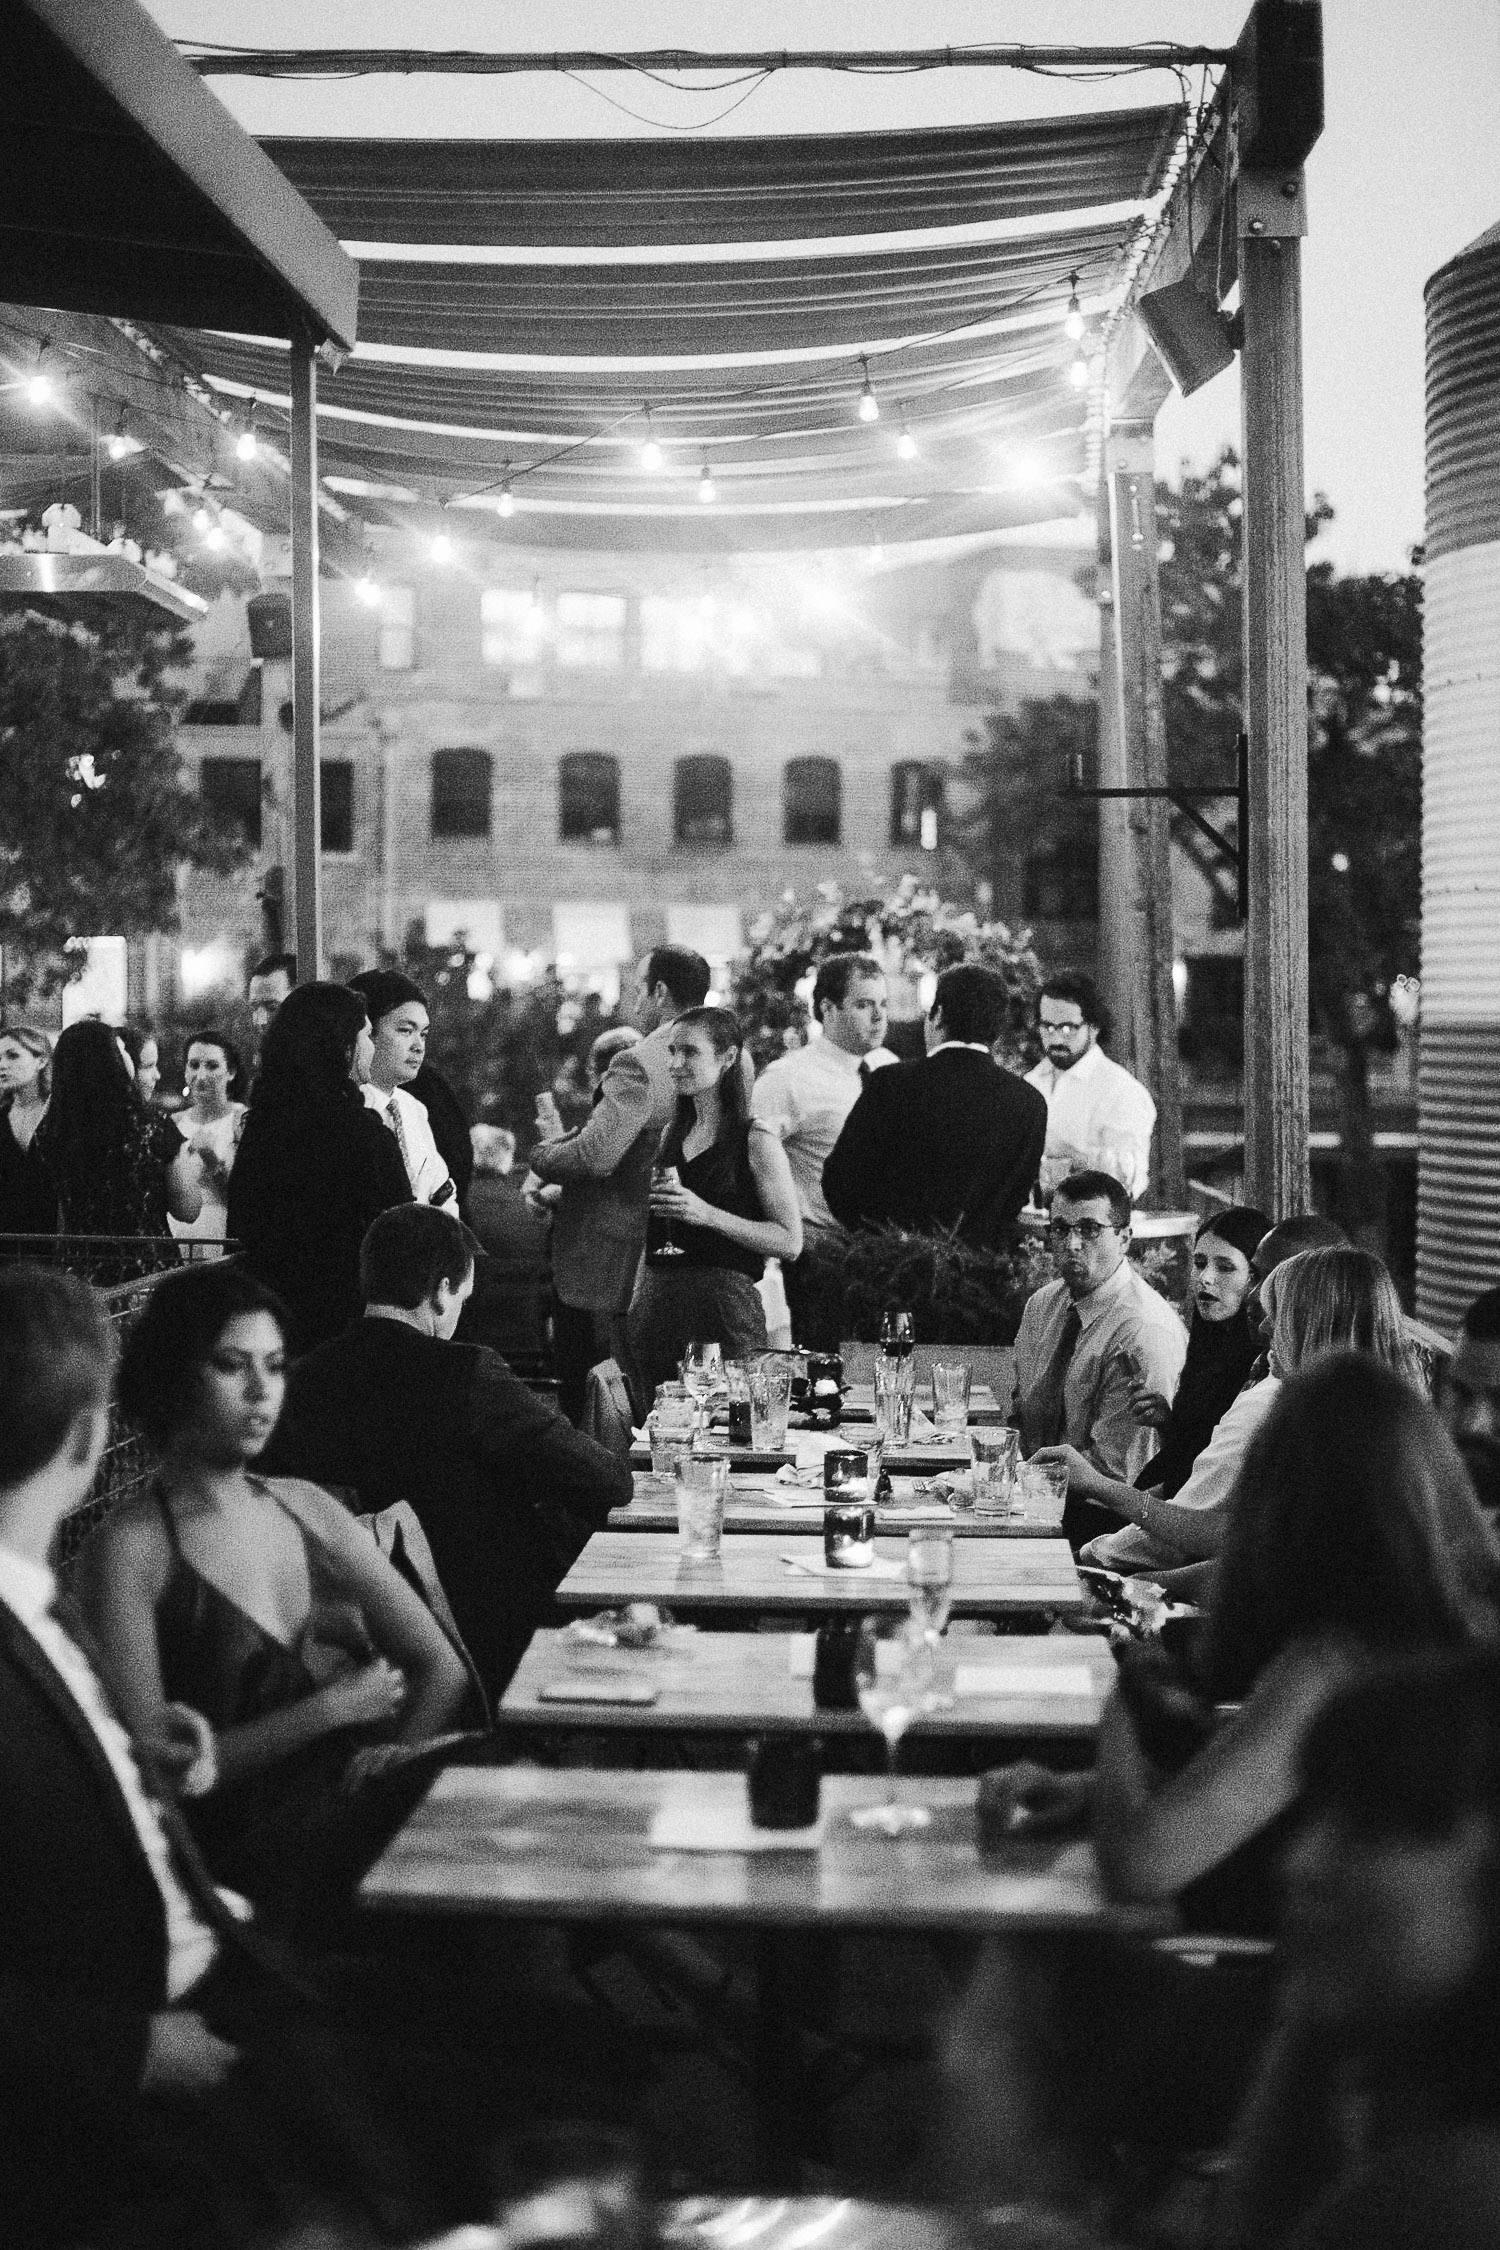 black and white wedding at JCT kitchen and bar